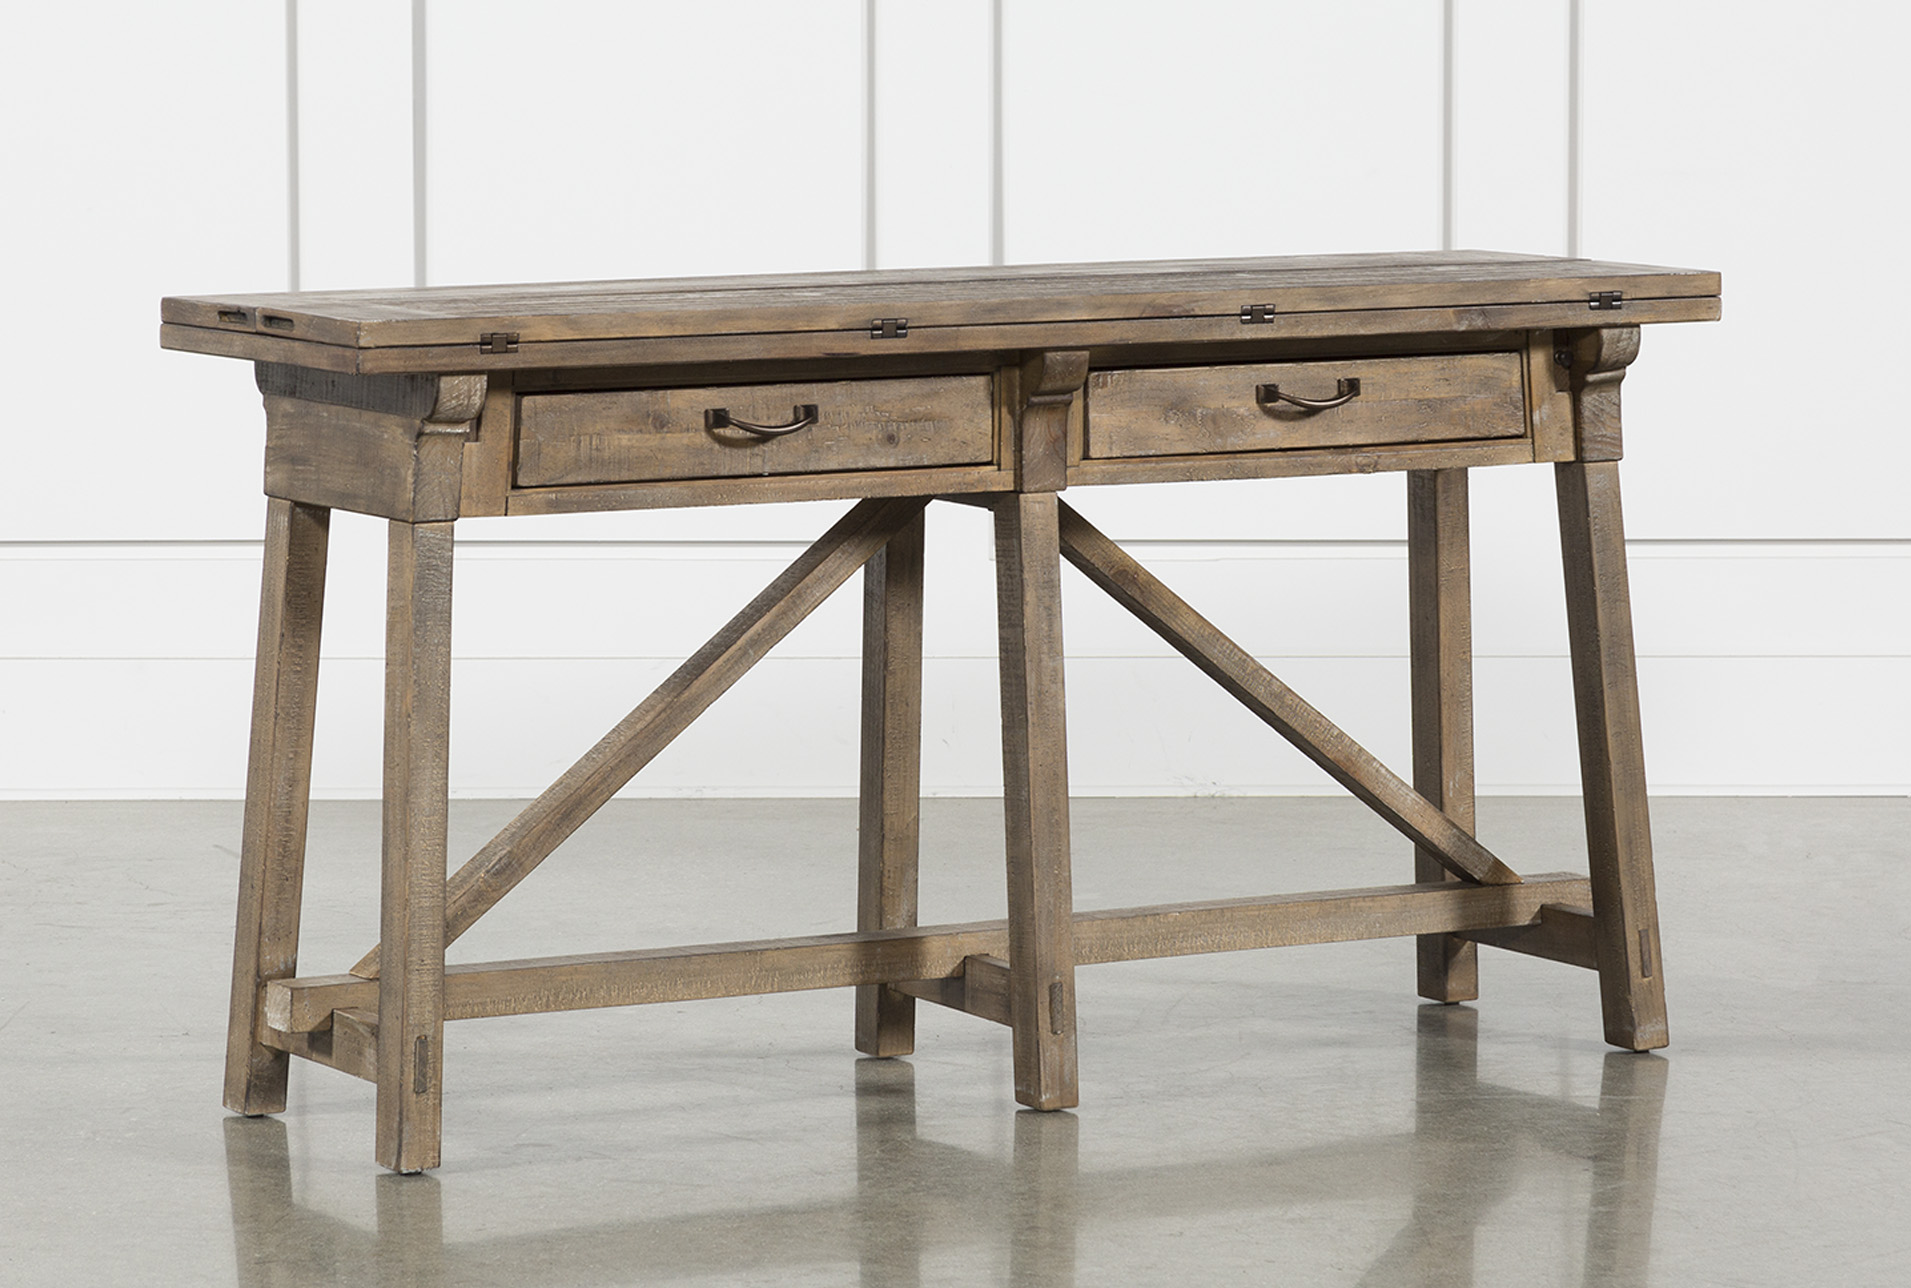 Charmant Craftsman Flip Top Sofa Table (Qty: 1) Has Been Successfully Added To Your  Cart.